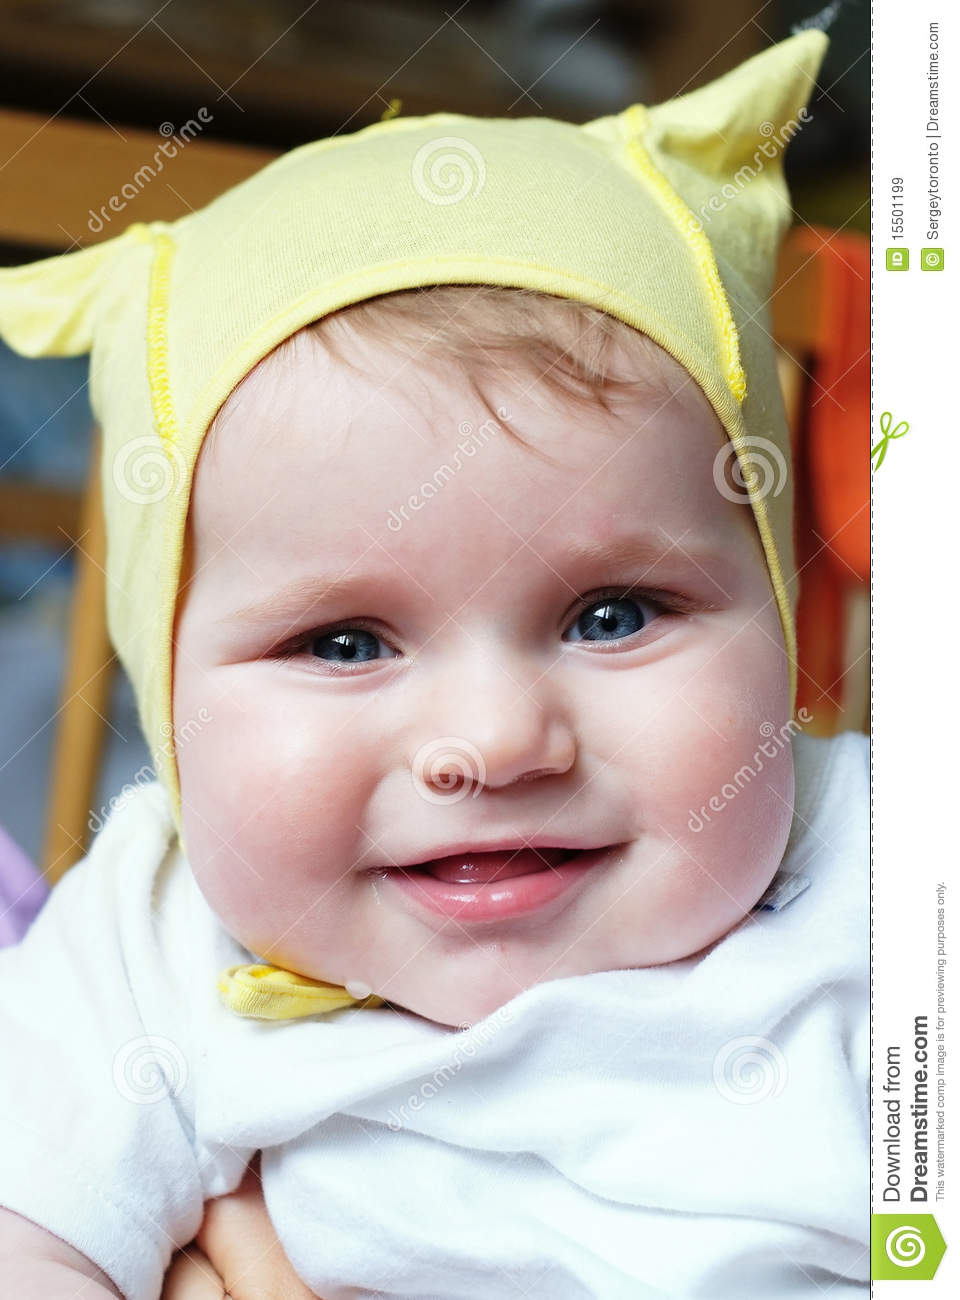 Cute laughing baby stock image. Image of holdhug, loving ...